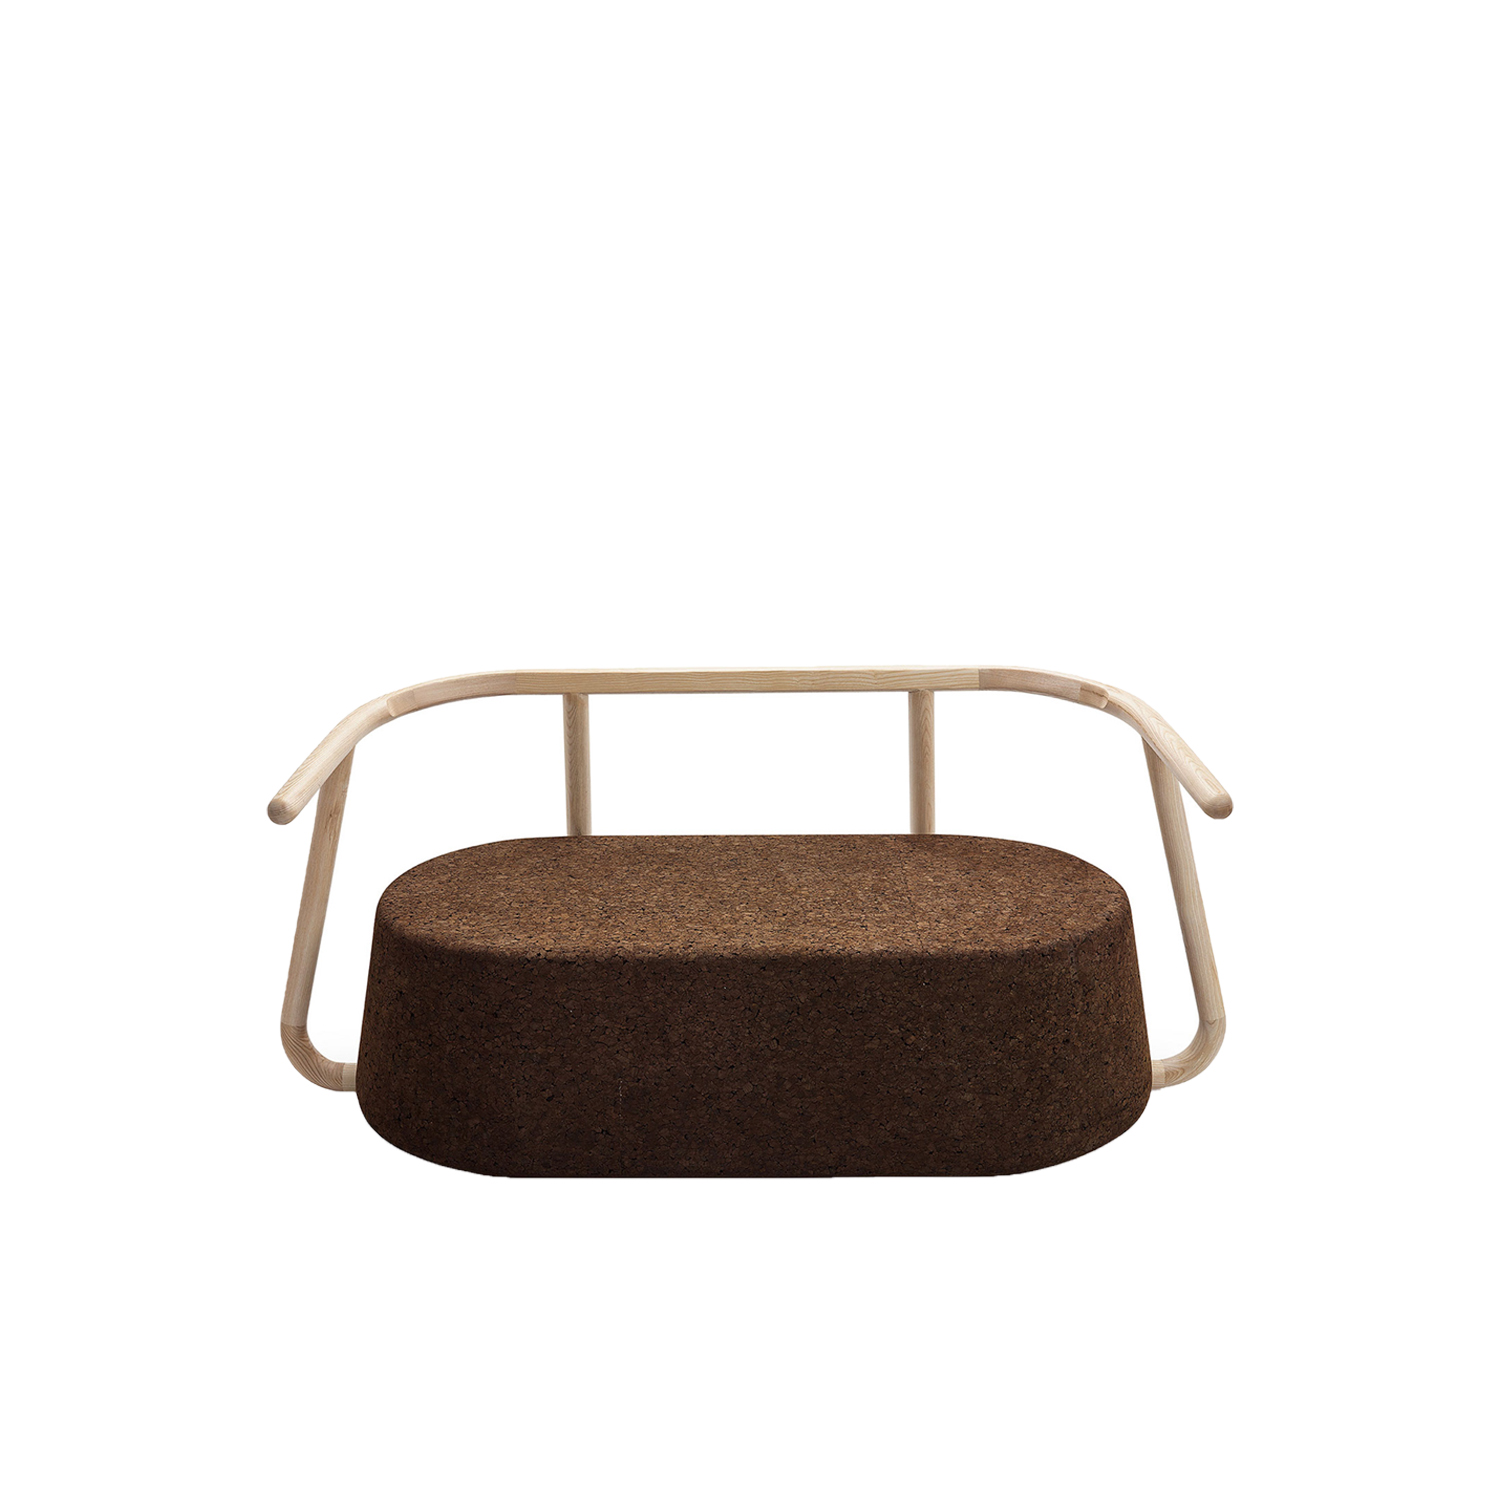 """Ypsilon Sofa - It is only used cork of the branches (falca) for the manufacture of cork granules. These are block clusters in autoclave, being 100% natural process, without use of additives. Technology, developed by Sofalca, consists of injecting water vapour through the pallets that will expand and agglutinate with the resins of the cork itself. This """"cooking"""" gives also dark colour to the agglomerated cork, like chocolate. In the production of steam I used biomass, obtained on milling and cleaning the falca, what makes it truly ecological production and without waste, 95% energy self-sufficient. As a super-material, cork offers so many advantages, because in addition to its excellent thermic, acoustic insulation and anti vibration characteristic, it is also a CO2 sink playing a key-role in the environment. 